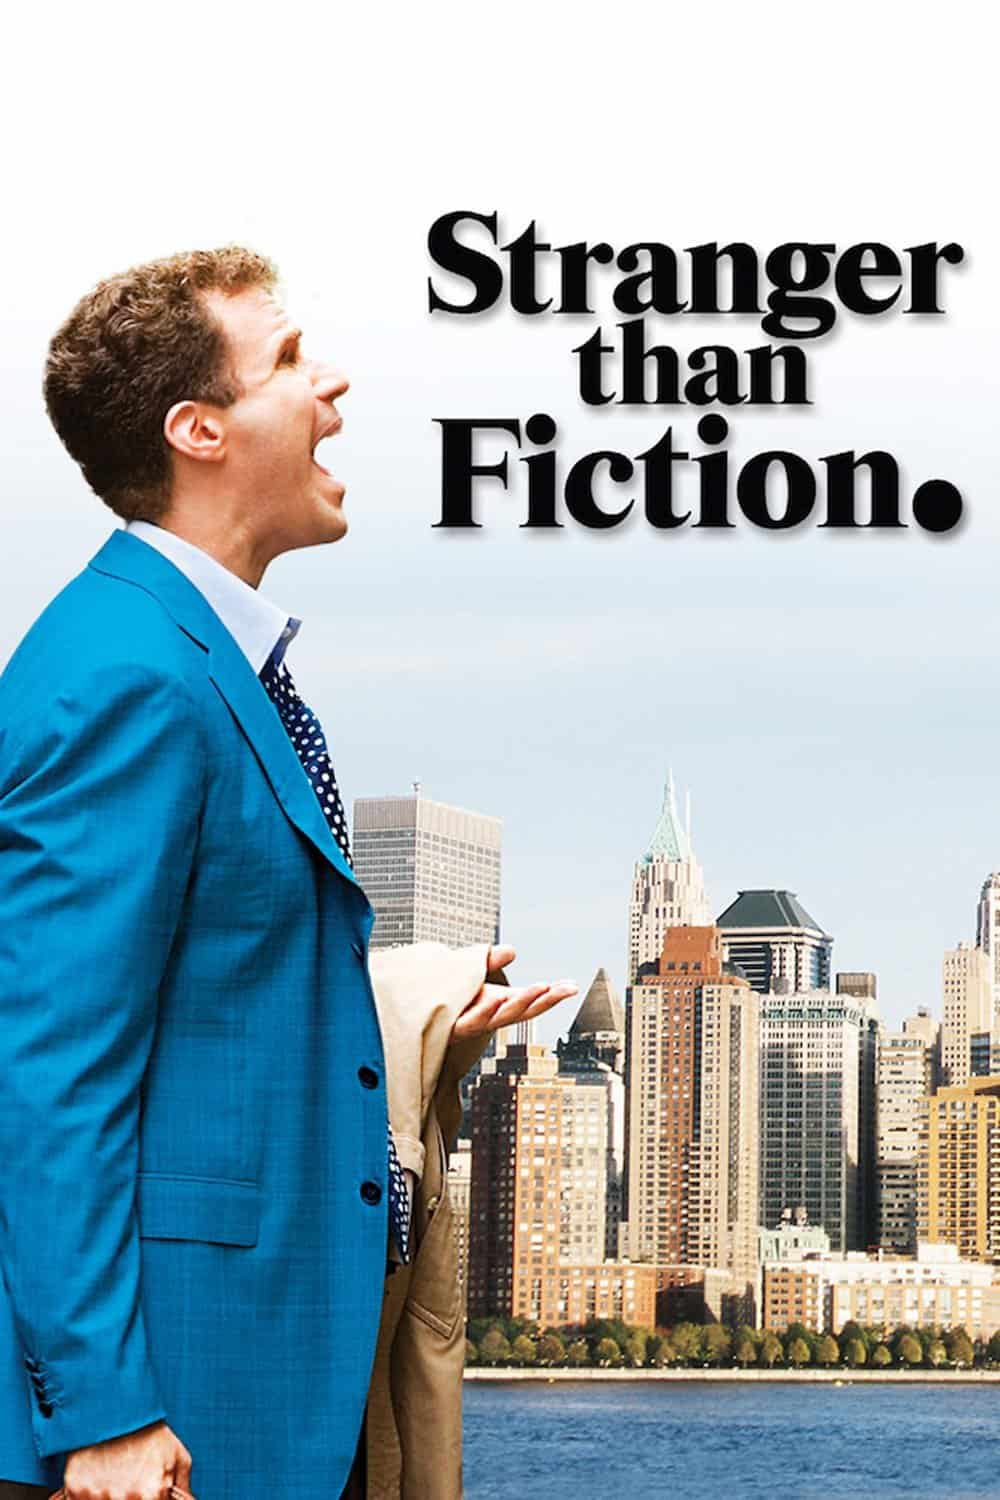 Stranger than Fiction, 2006